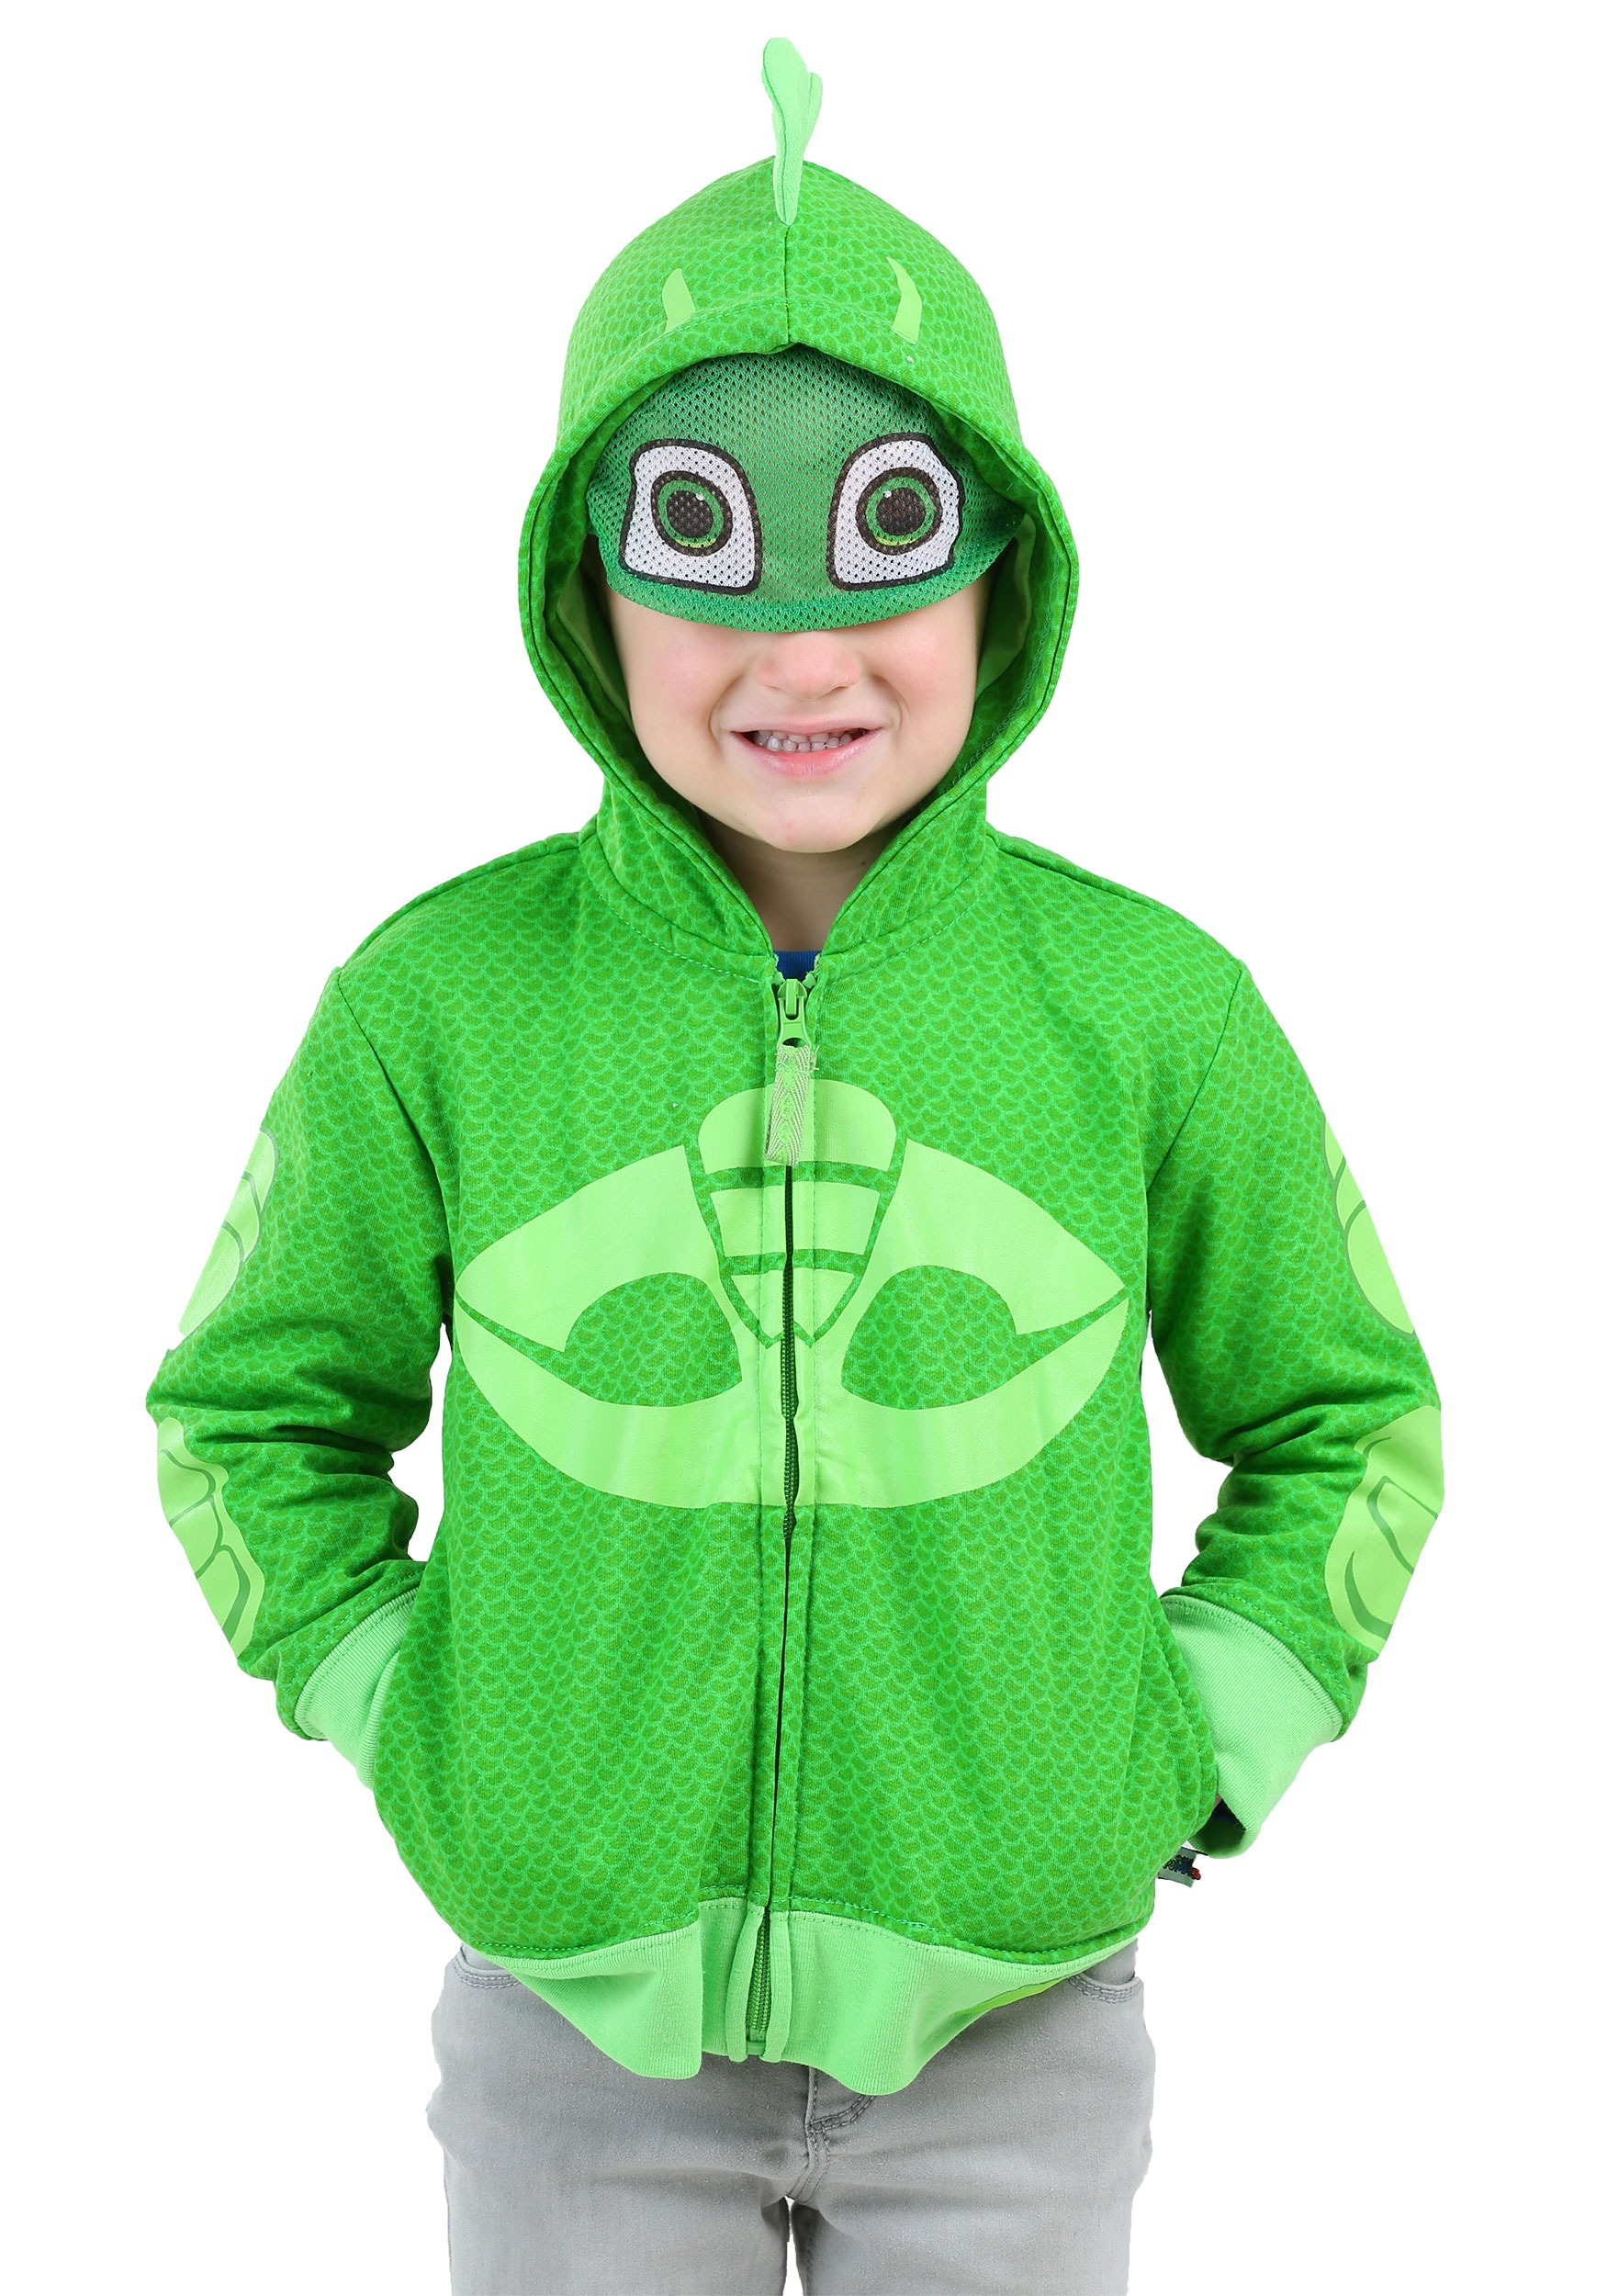 Costume hoodies for adults